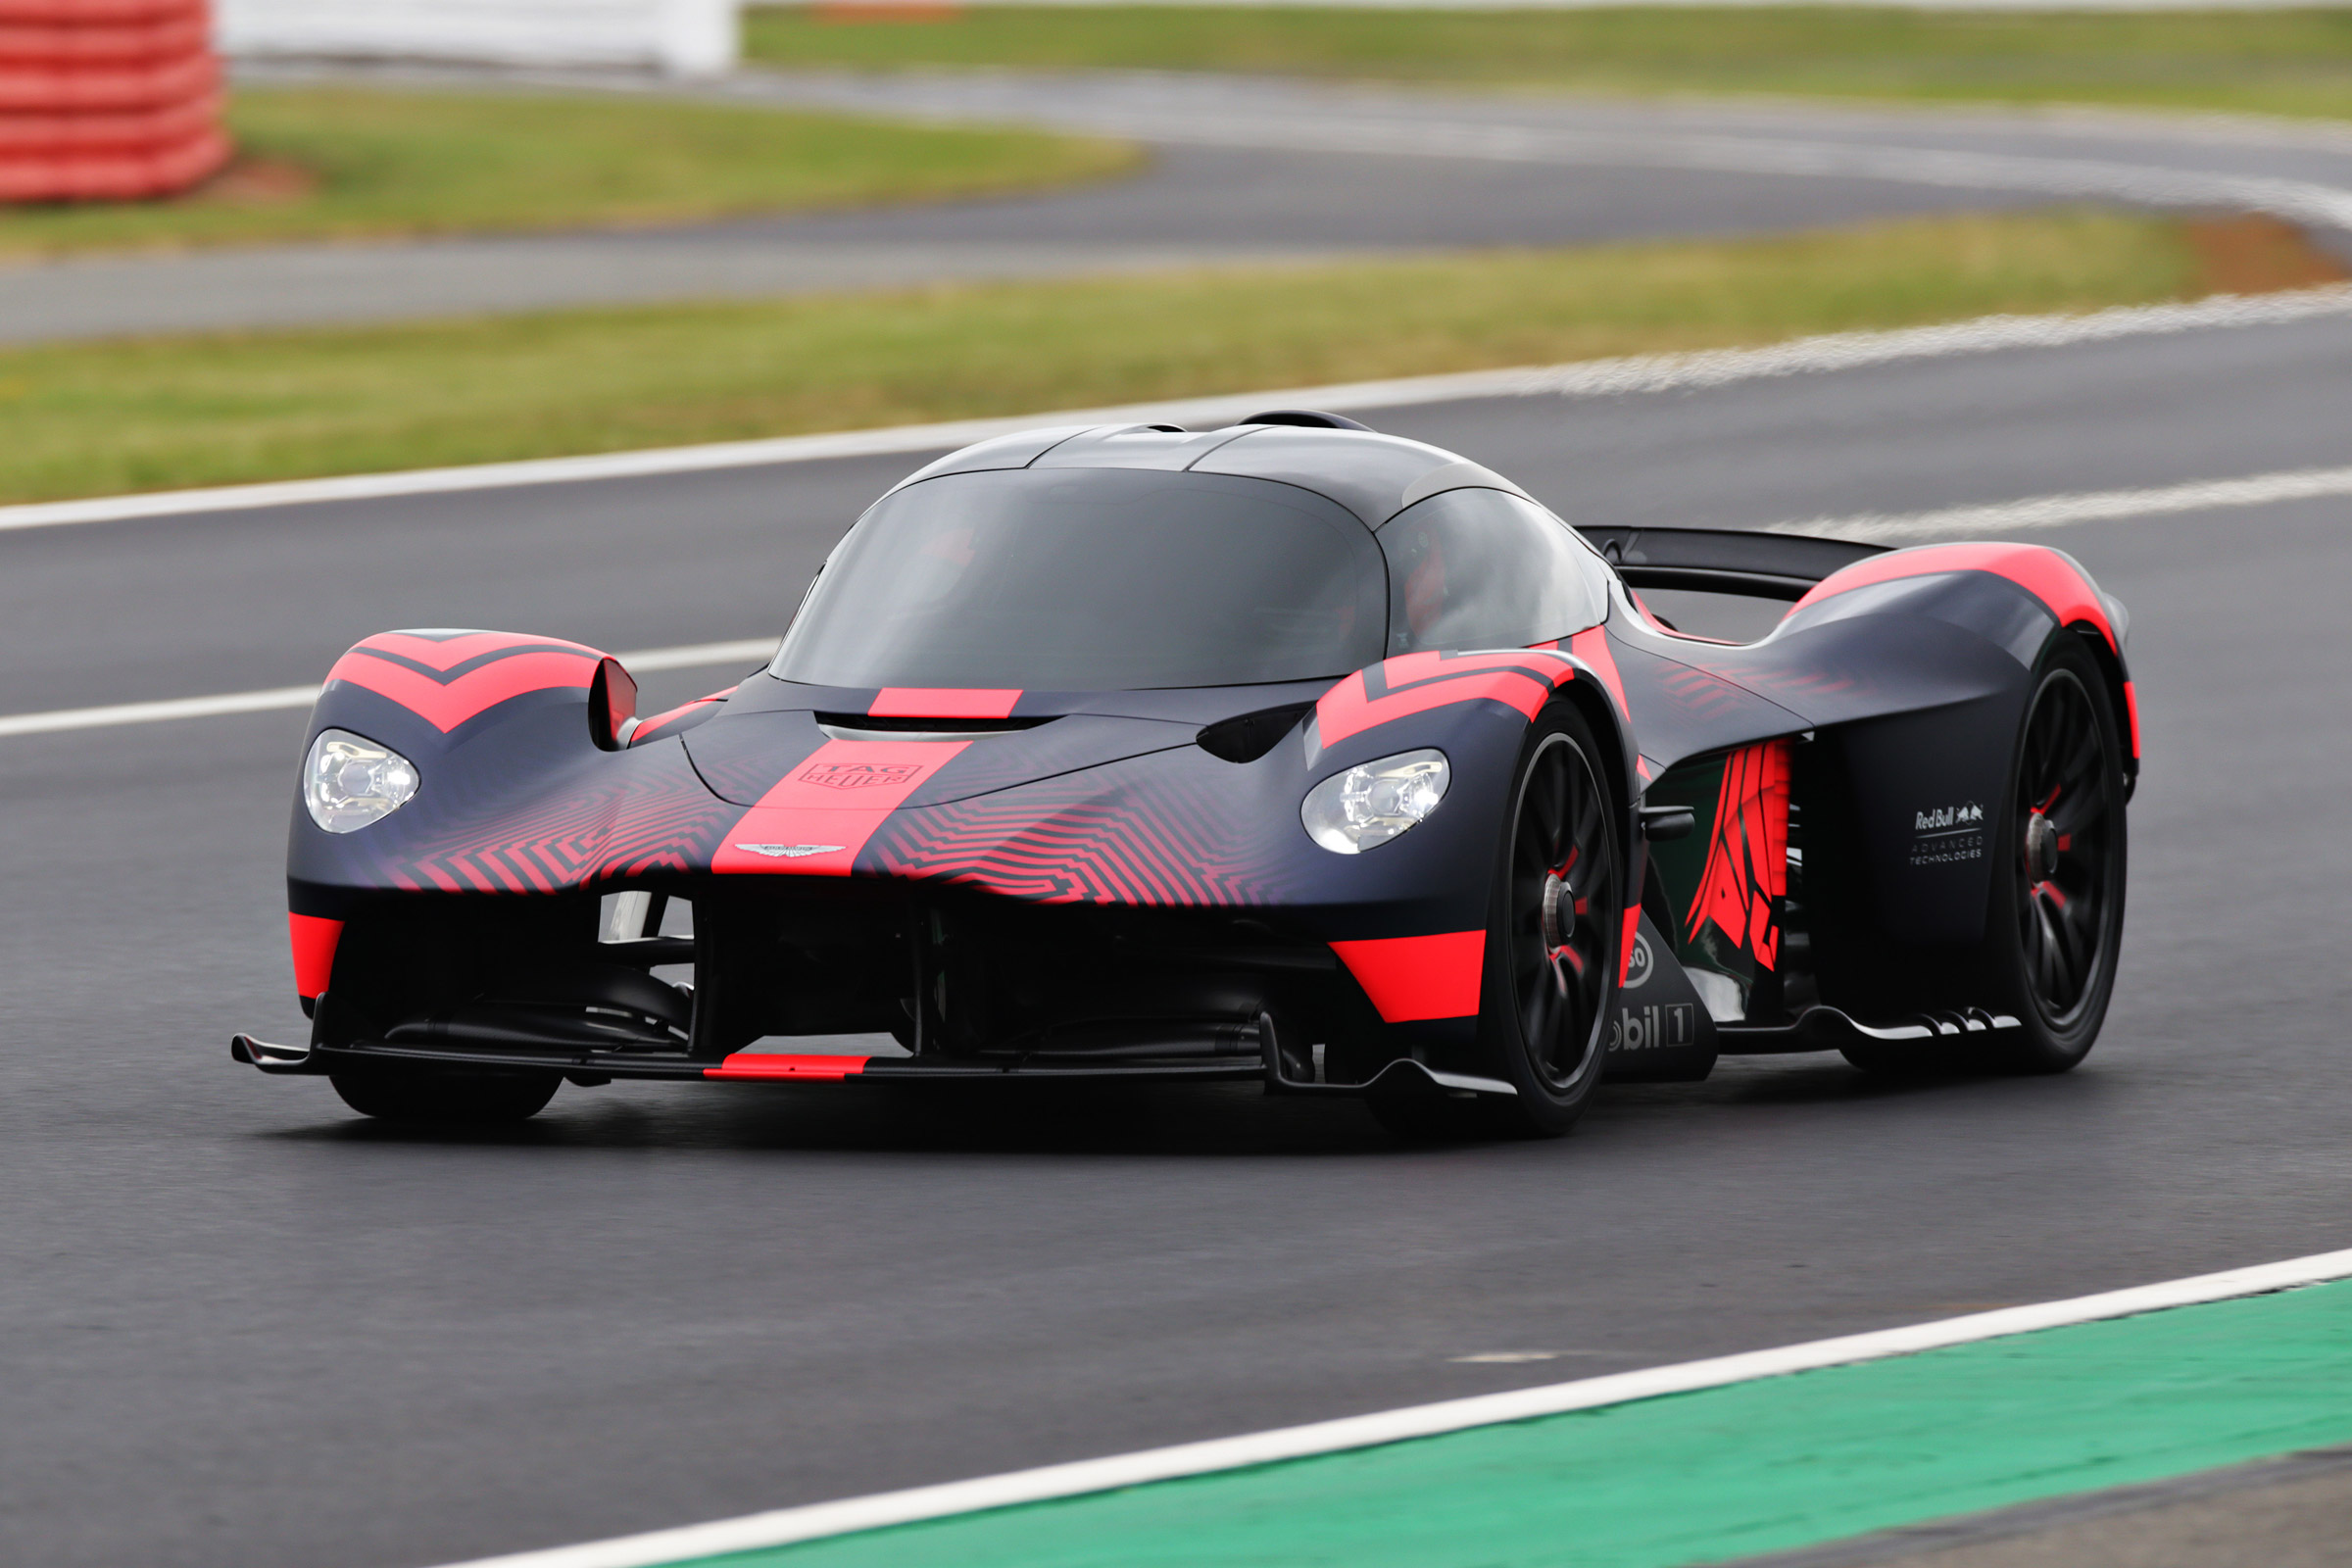 Aston Martin Valkyrie 1160bhp Hypercar Debuts On Track At